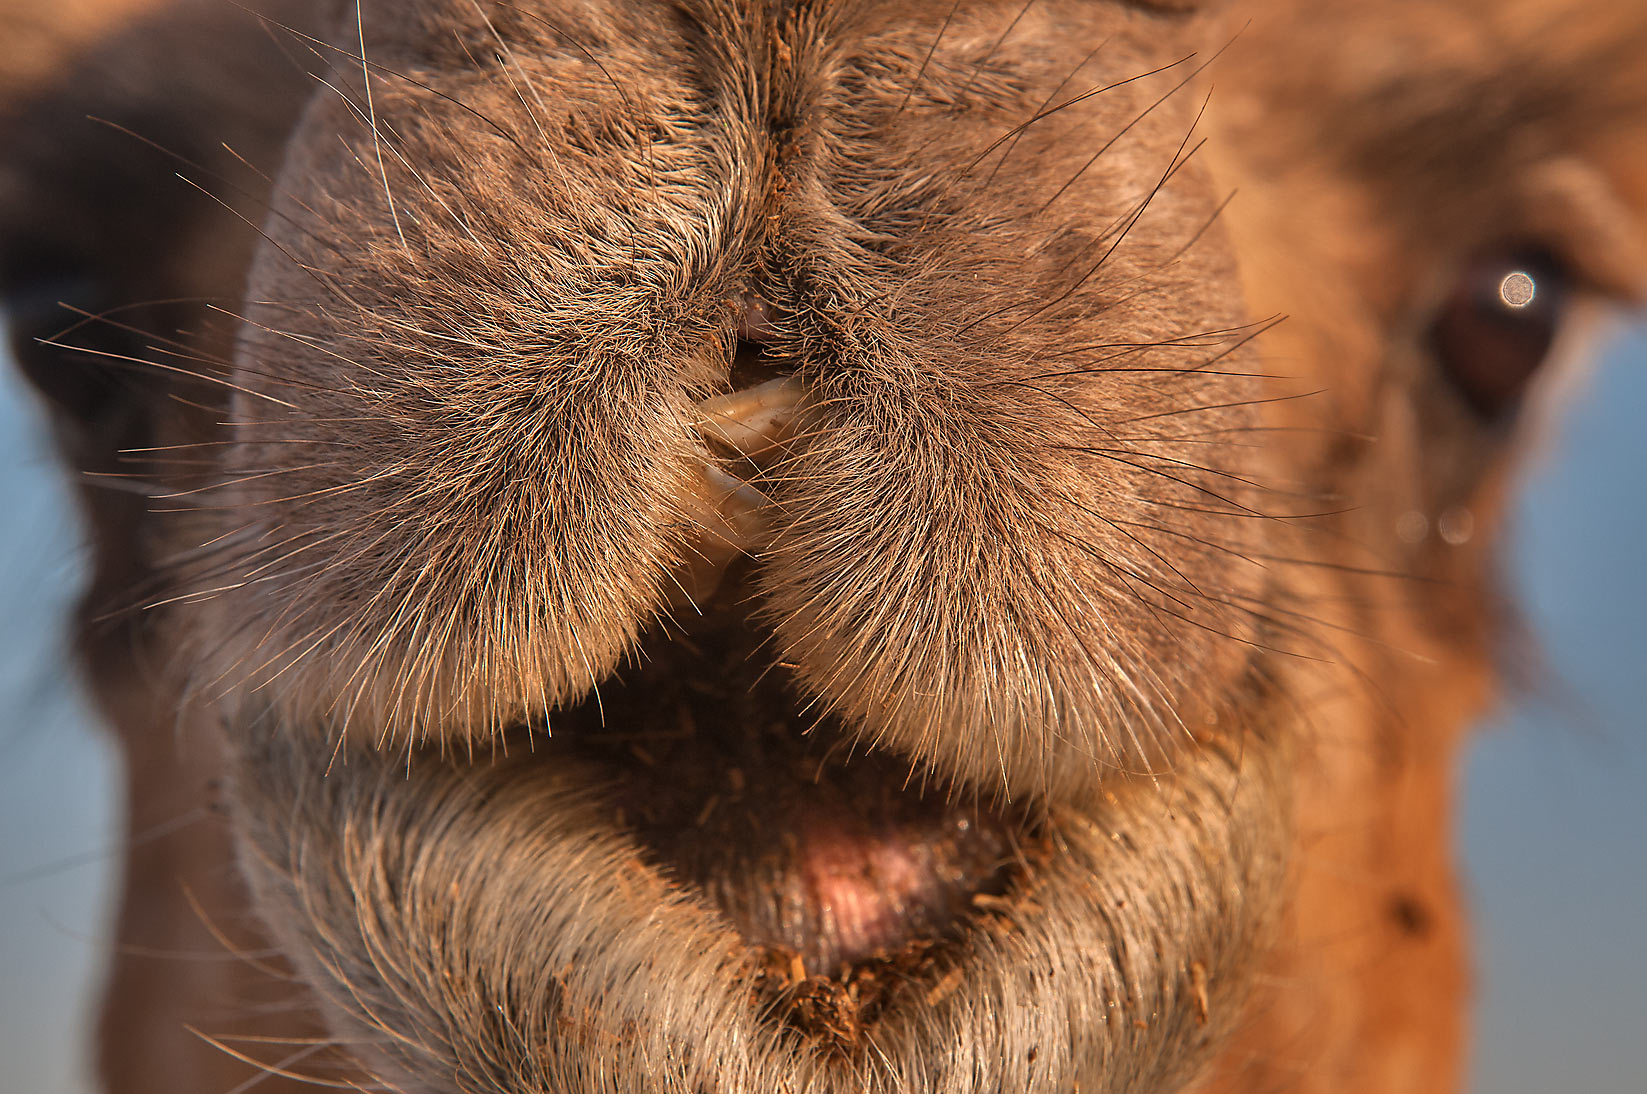 Camel's snout in livestock market, Abu Hamour area. Doha, Qatar